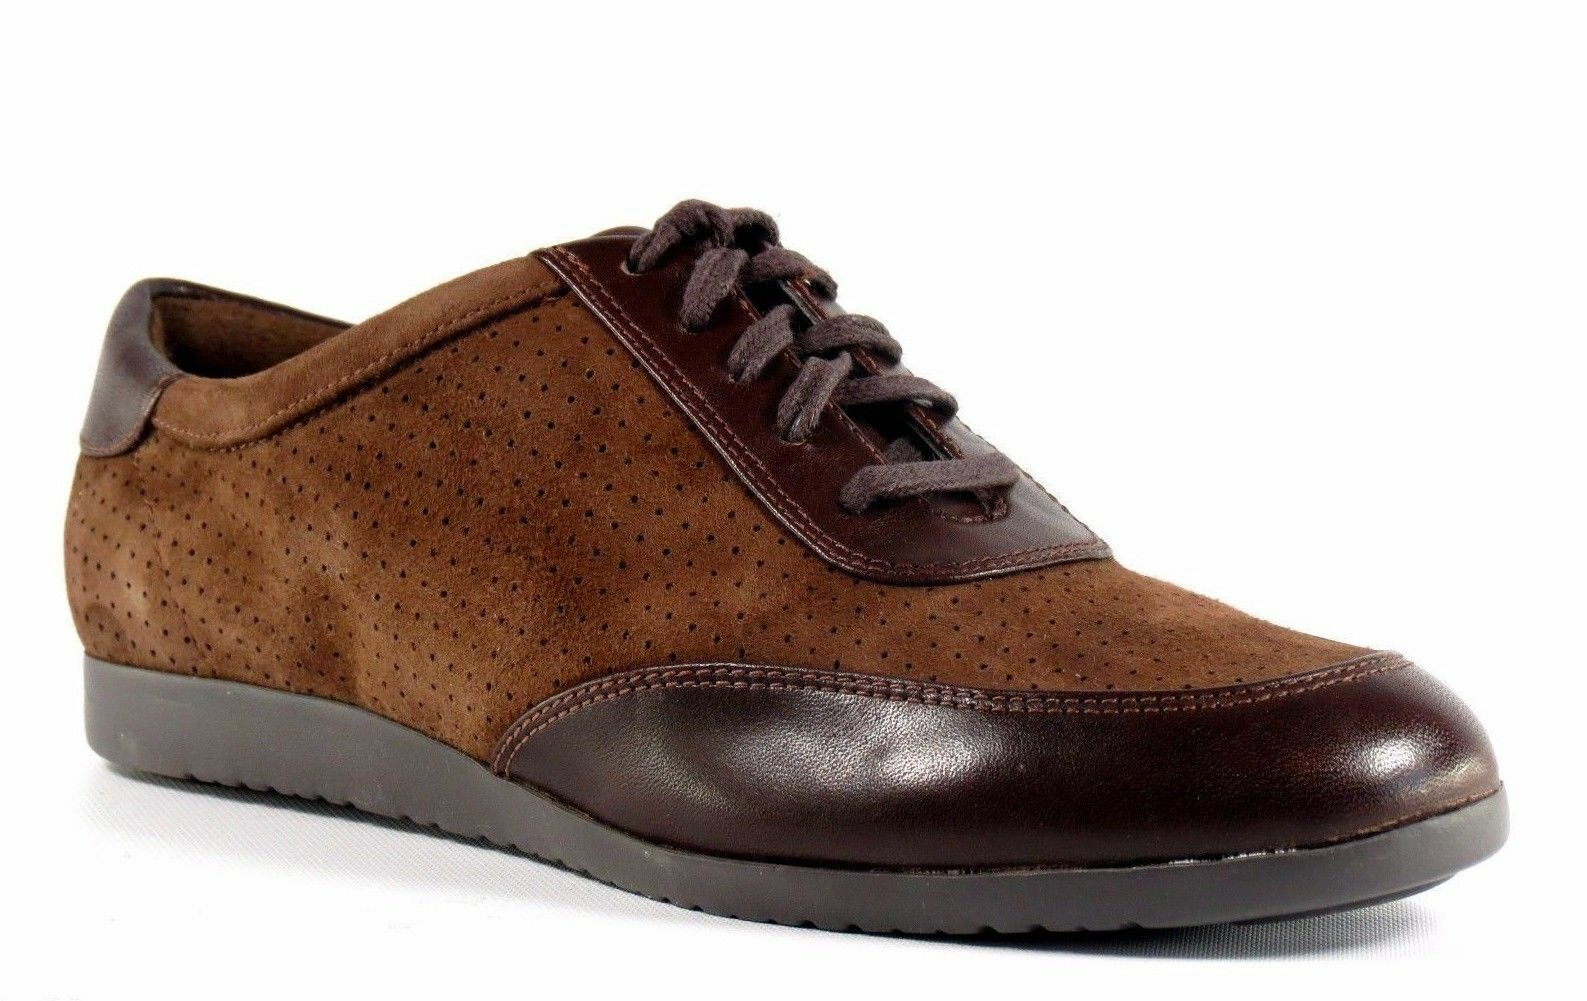 Cole Haan Gilmore Oxford MARRON Perforé Daim Cuir à Lacets Chaussure 8